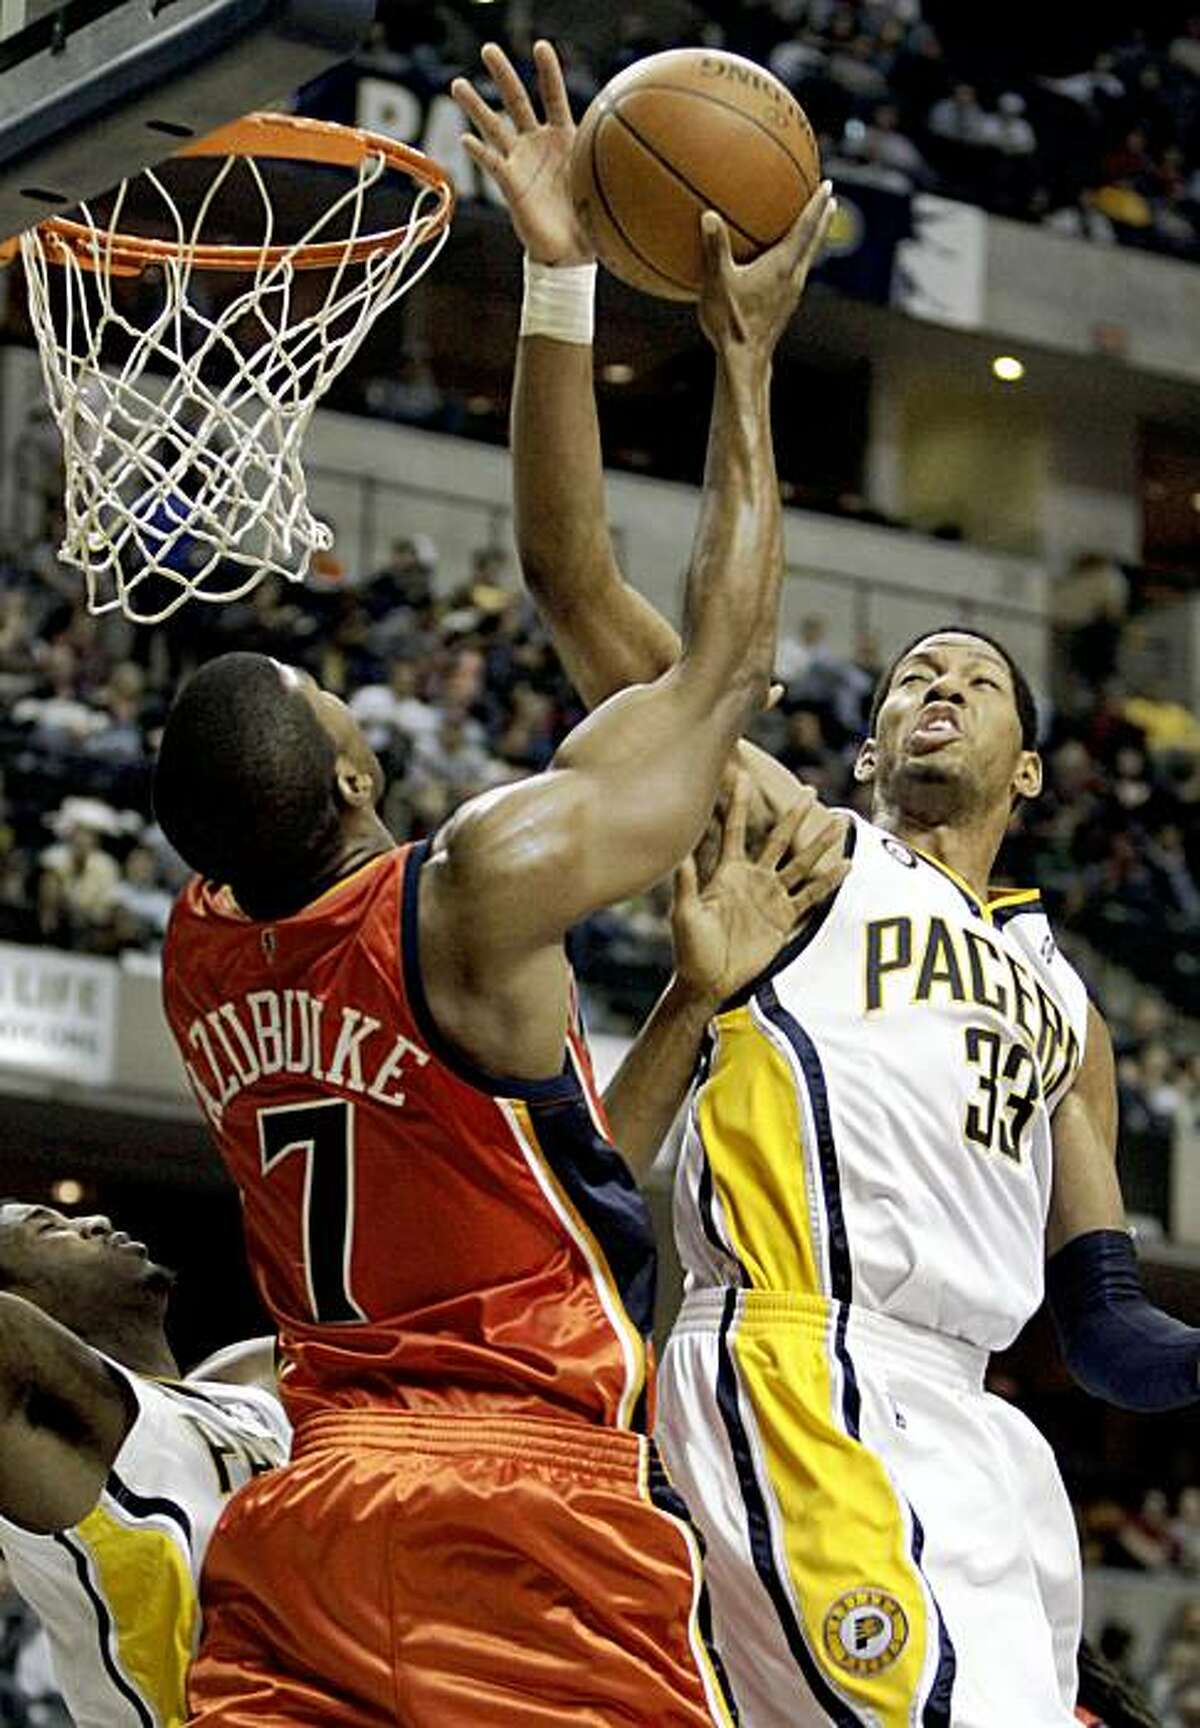 Indiana Pacers forward Danny Granger, right, blocks the shot of Golden State Warriors forward Kelenna Azubuike during the second half of an NBA basketball game in Indianapolis, Wednesday, Nov. 11, 2009. The Pacers won 108-94. (AP Photo/AJ Mast)